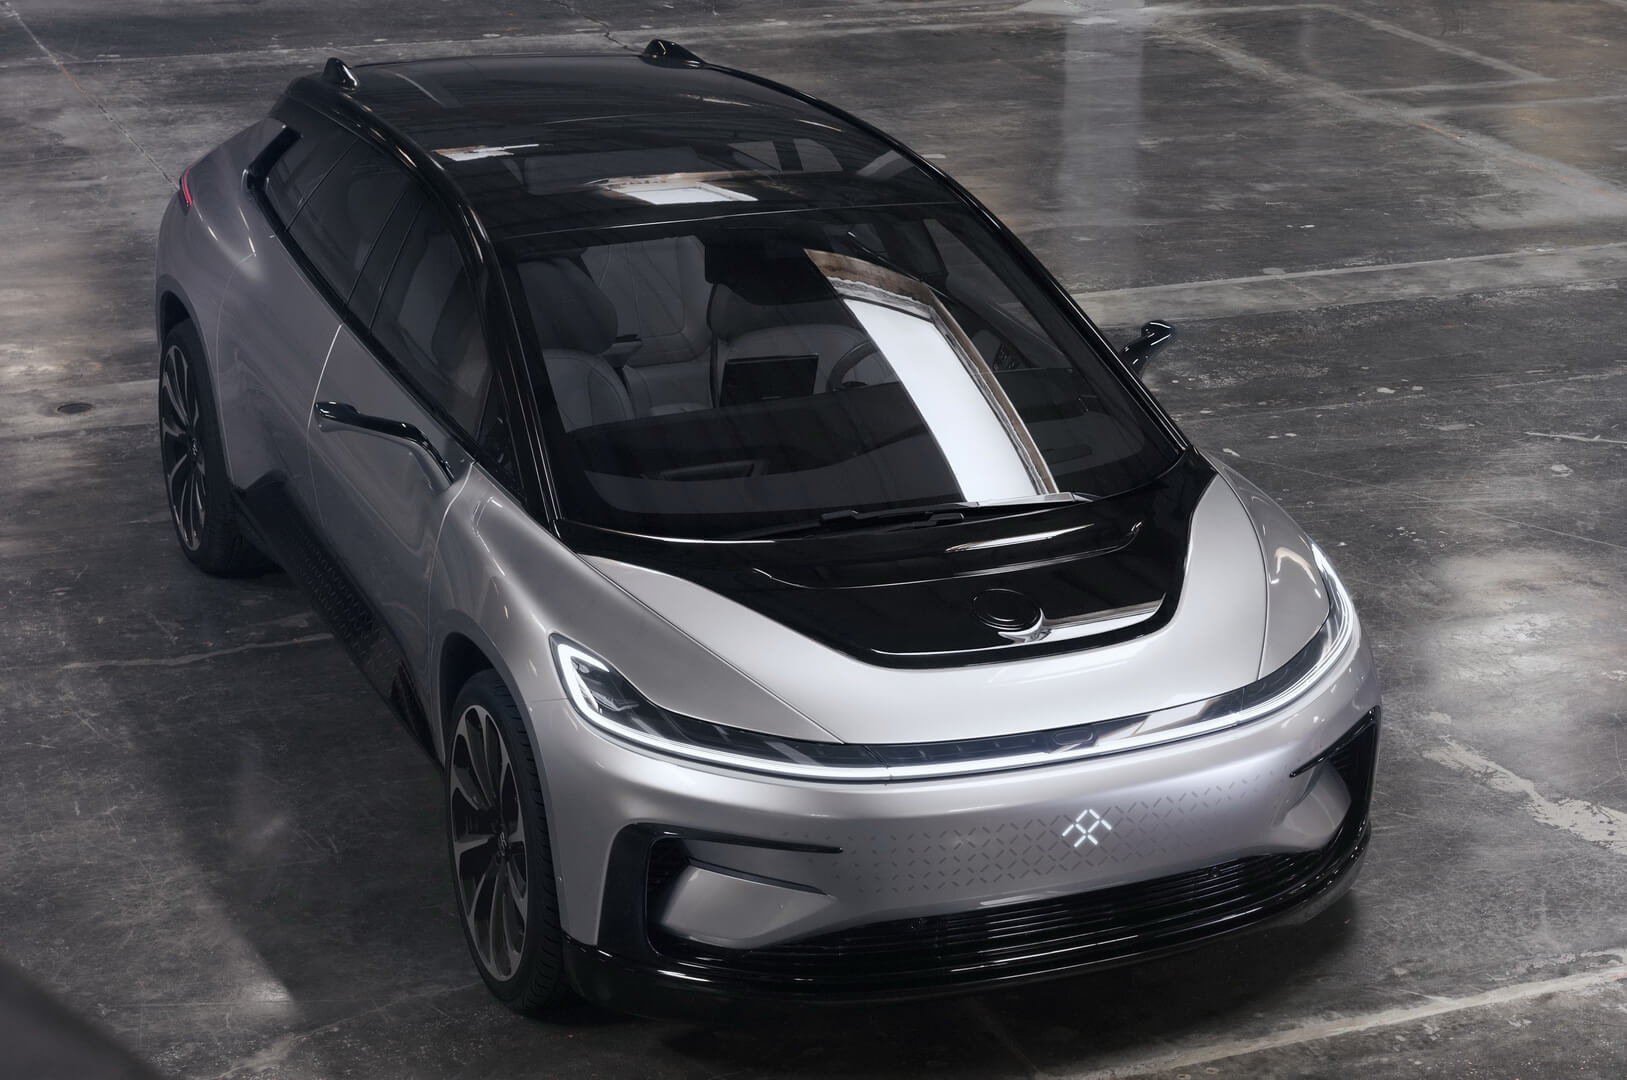 Faraday Future FF 91-exterior-10